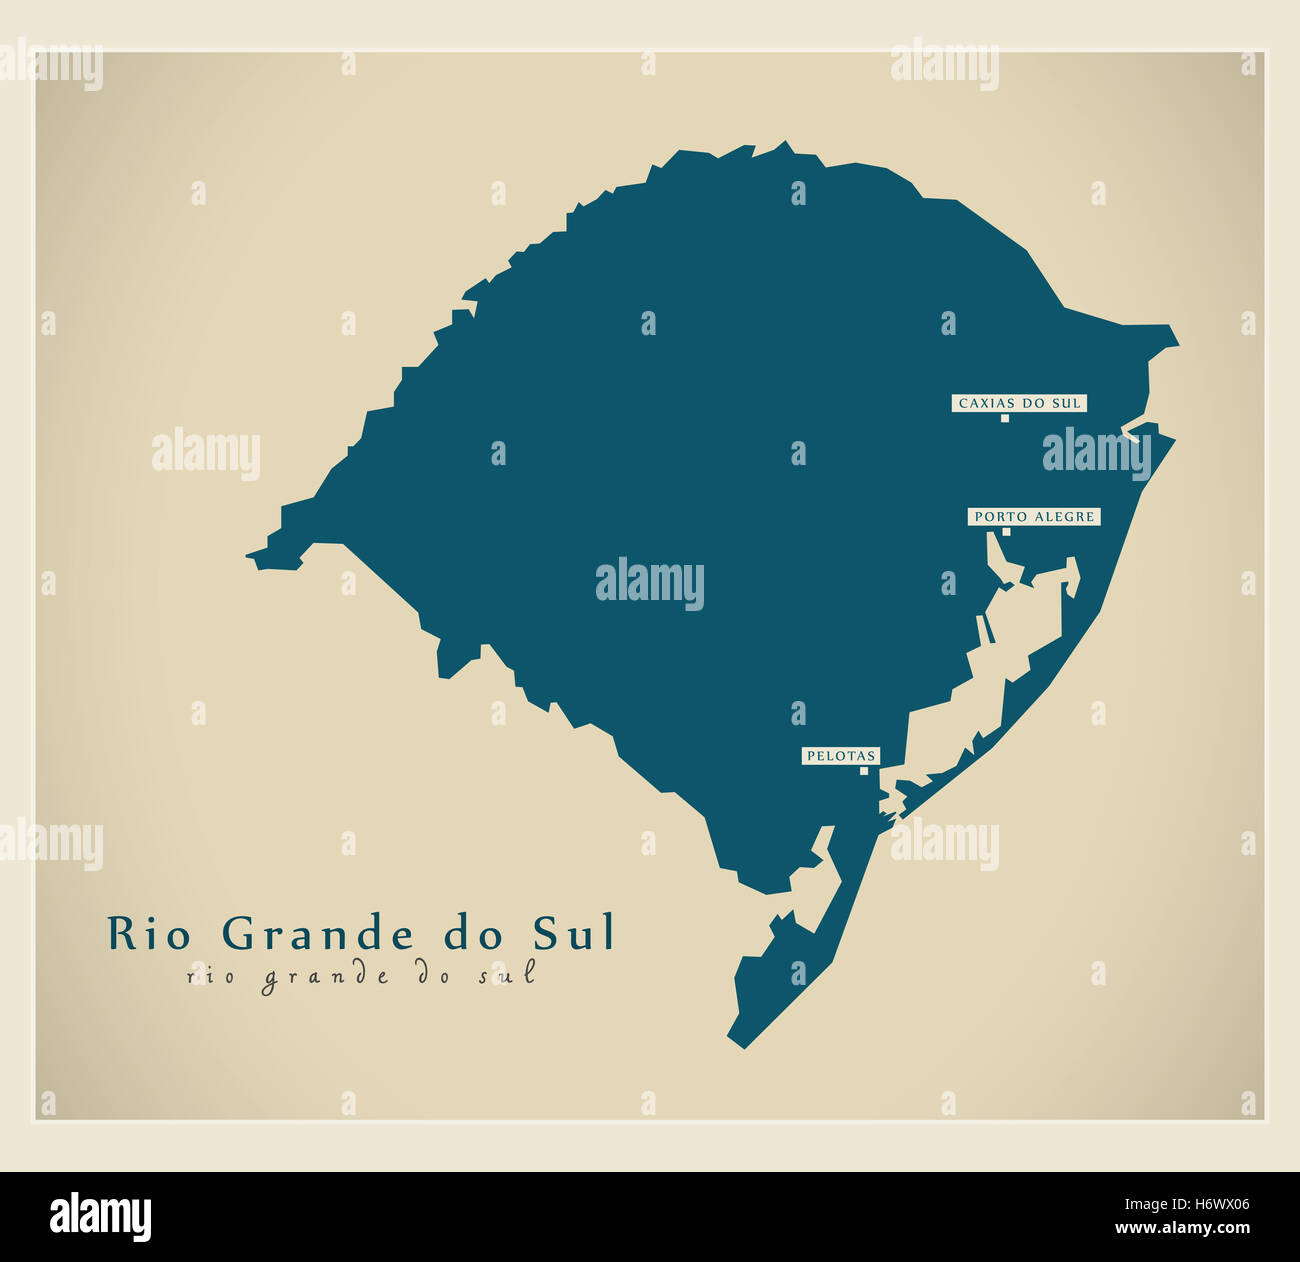 Modern Map  Rio Grande do Sul BR Stock Photo Royalty Free Image